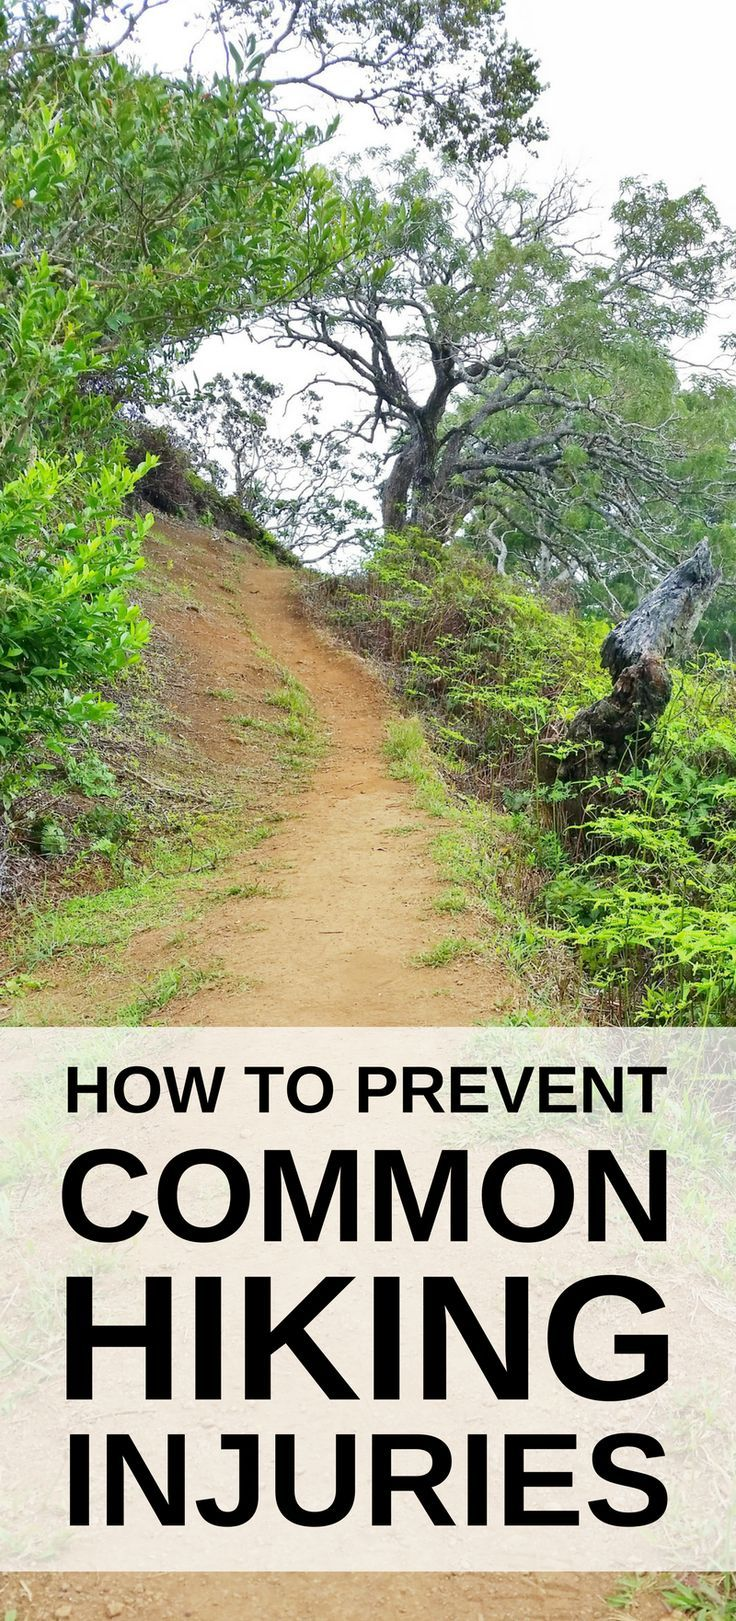 Photo of Hiking Tips: How to prevent knee pain from hiking hills :: hiking injuries. walking injuries.